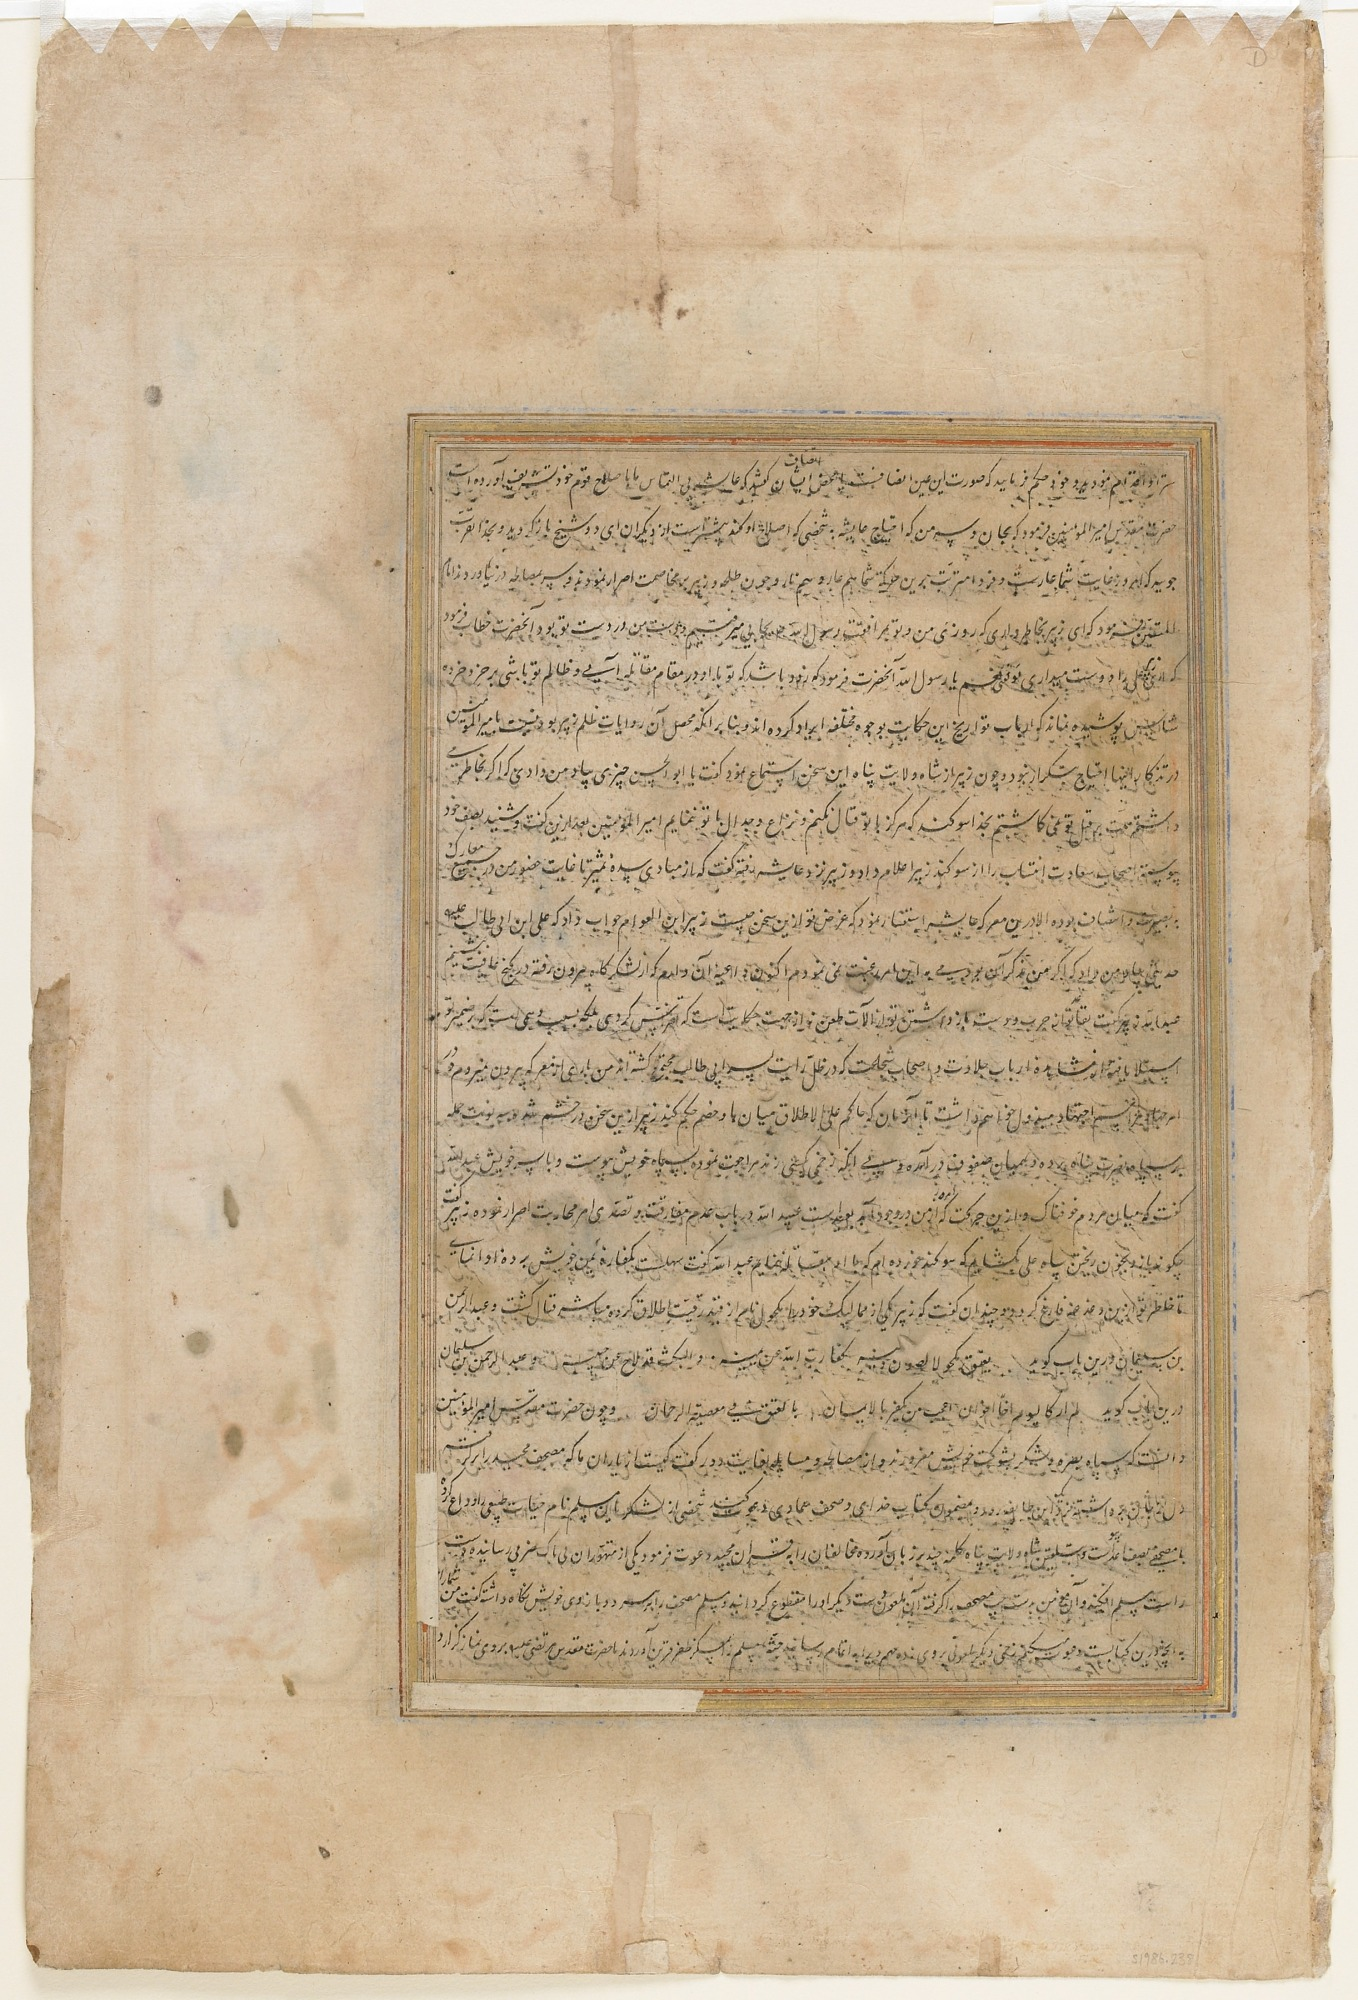 Folio from a Rawdat al-safa (Garden of felicity) by Mirkhwand (d. 1498); verso: Ali and Aisha at the Battle of the Camel; recto: text